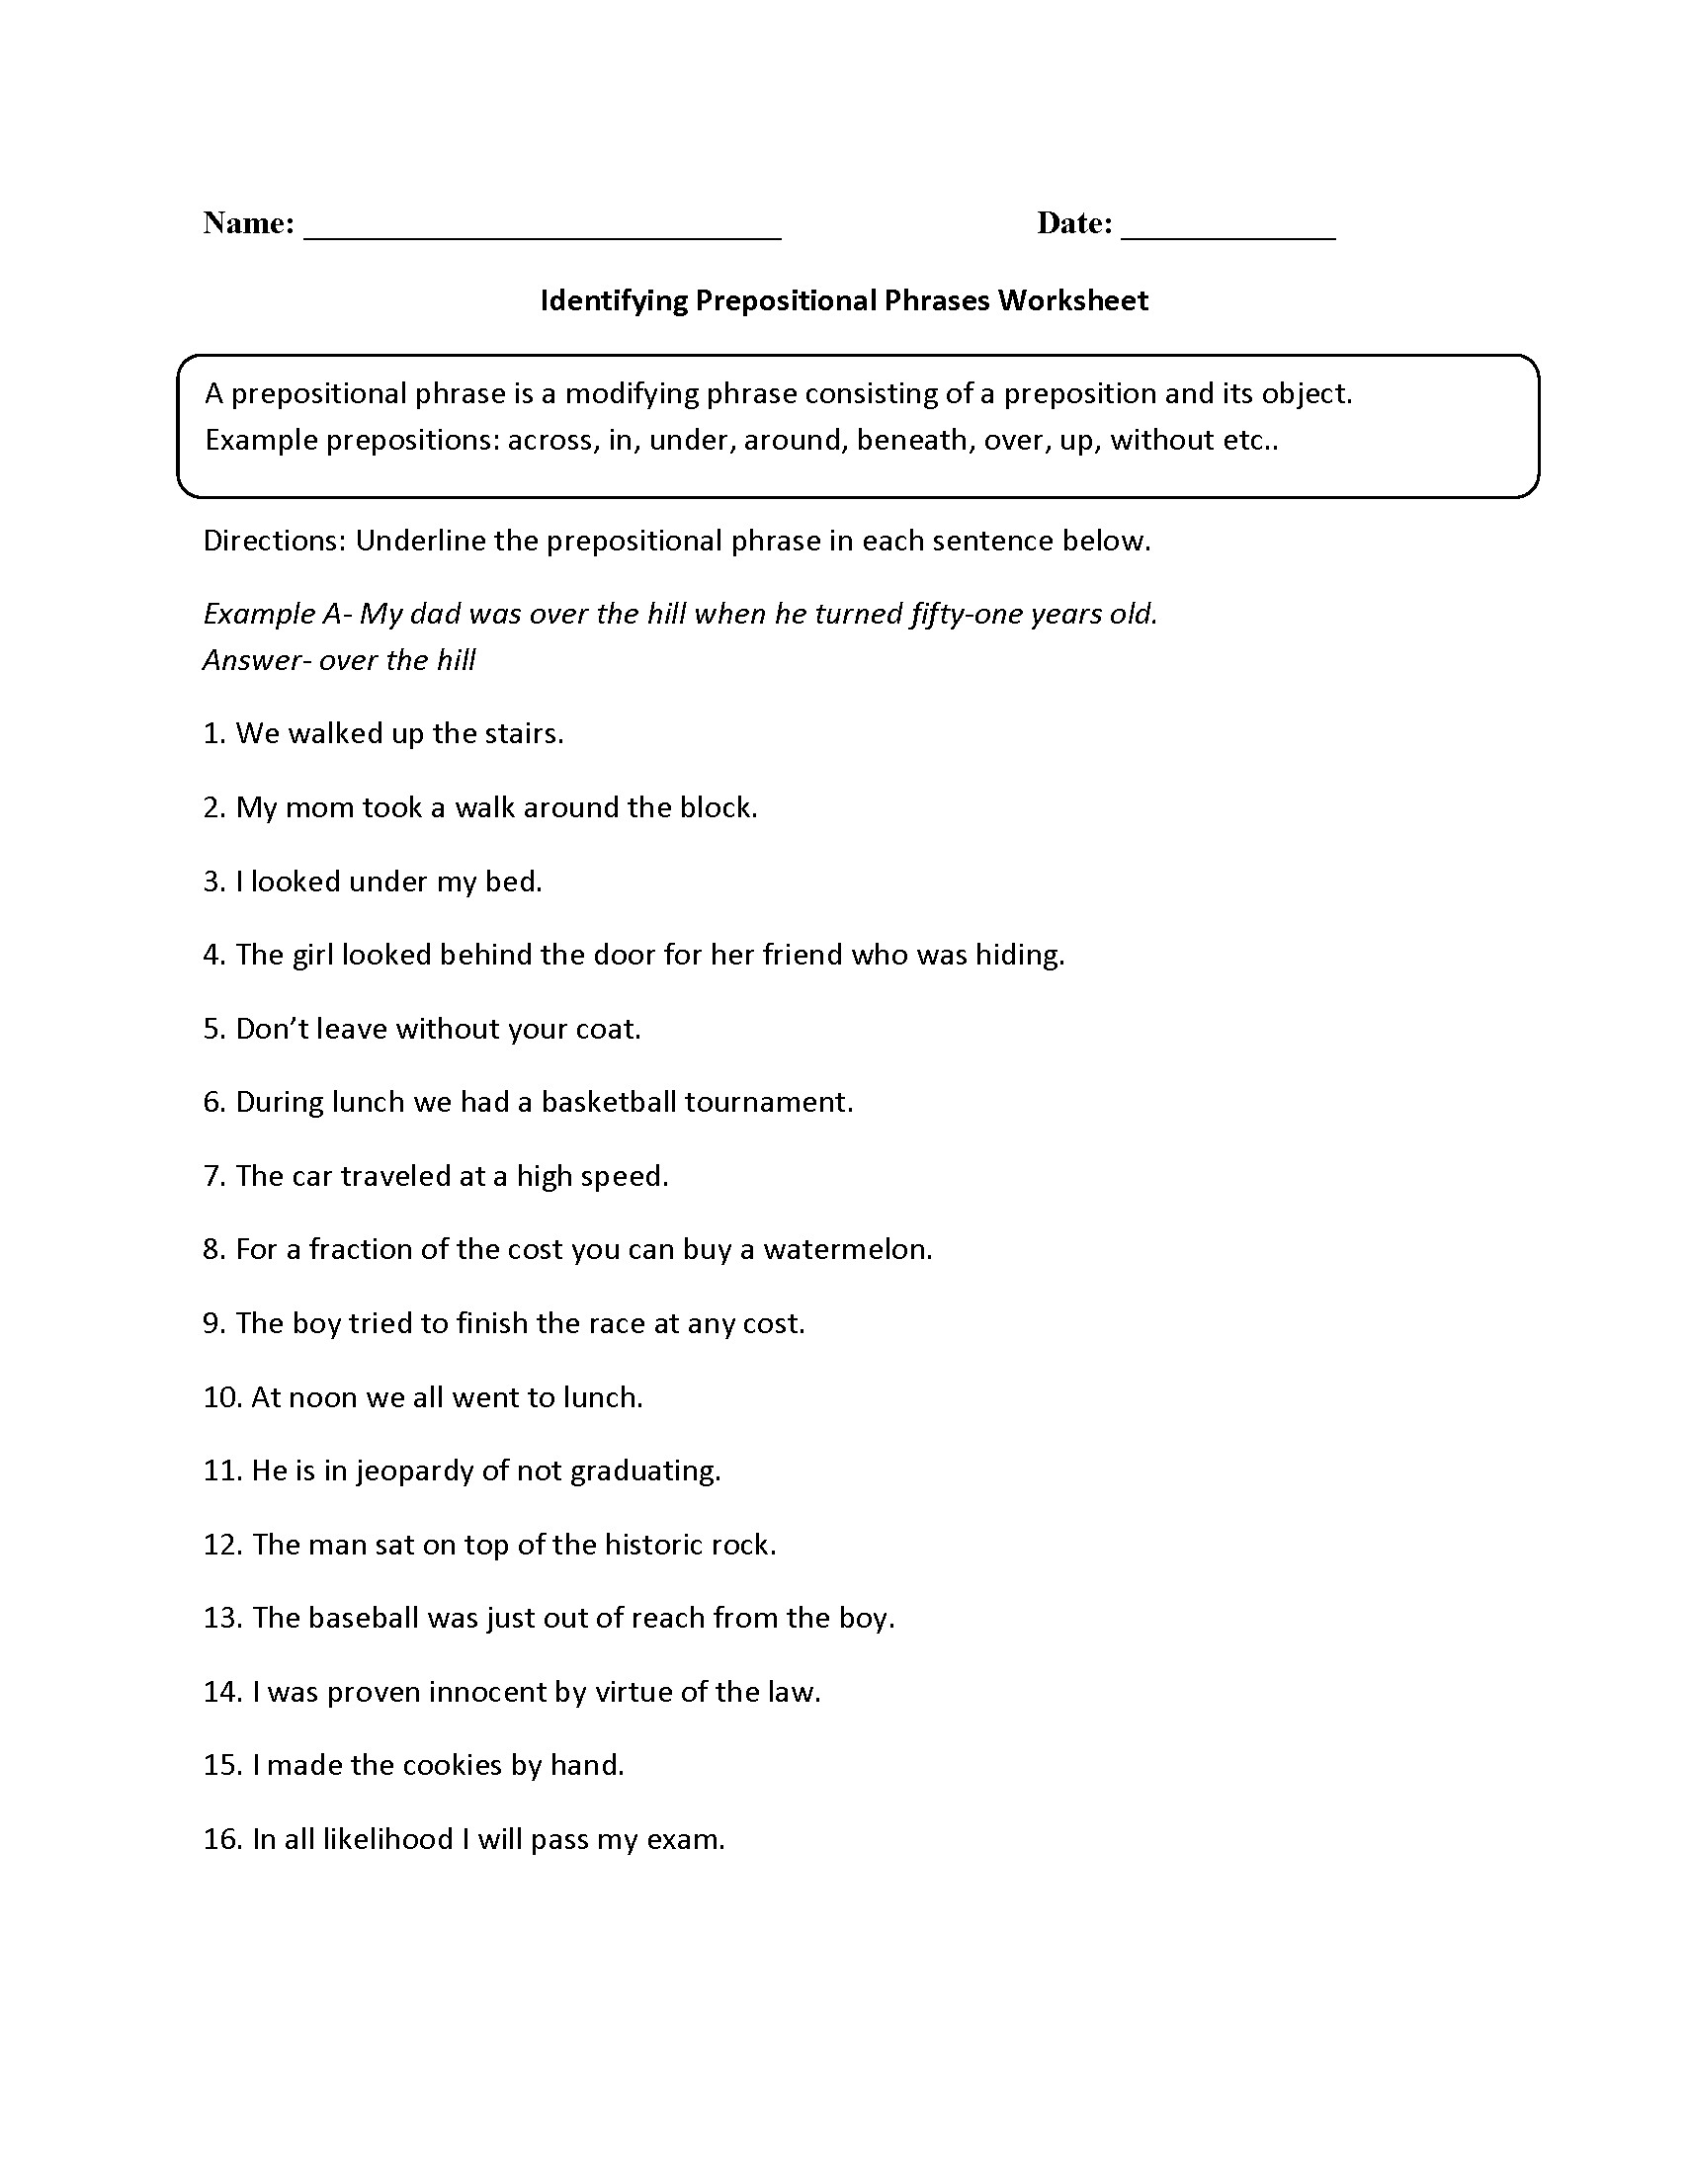 Transitional Words And Phrases Worksheet Answers